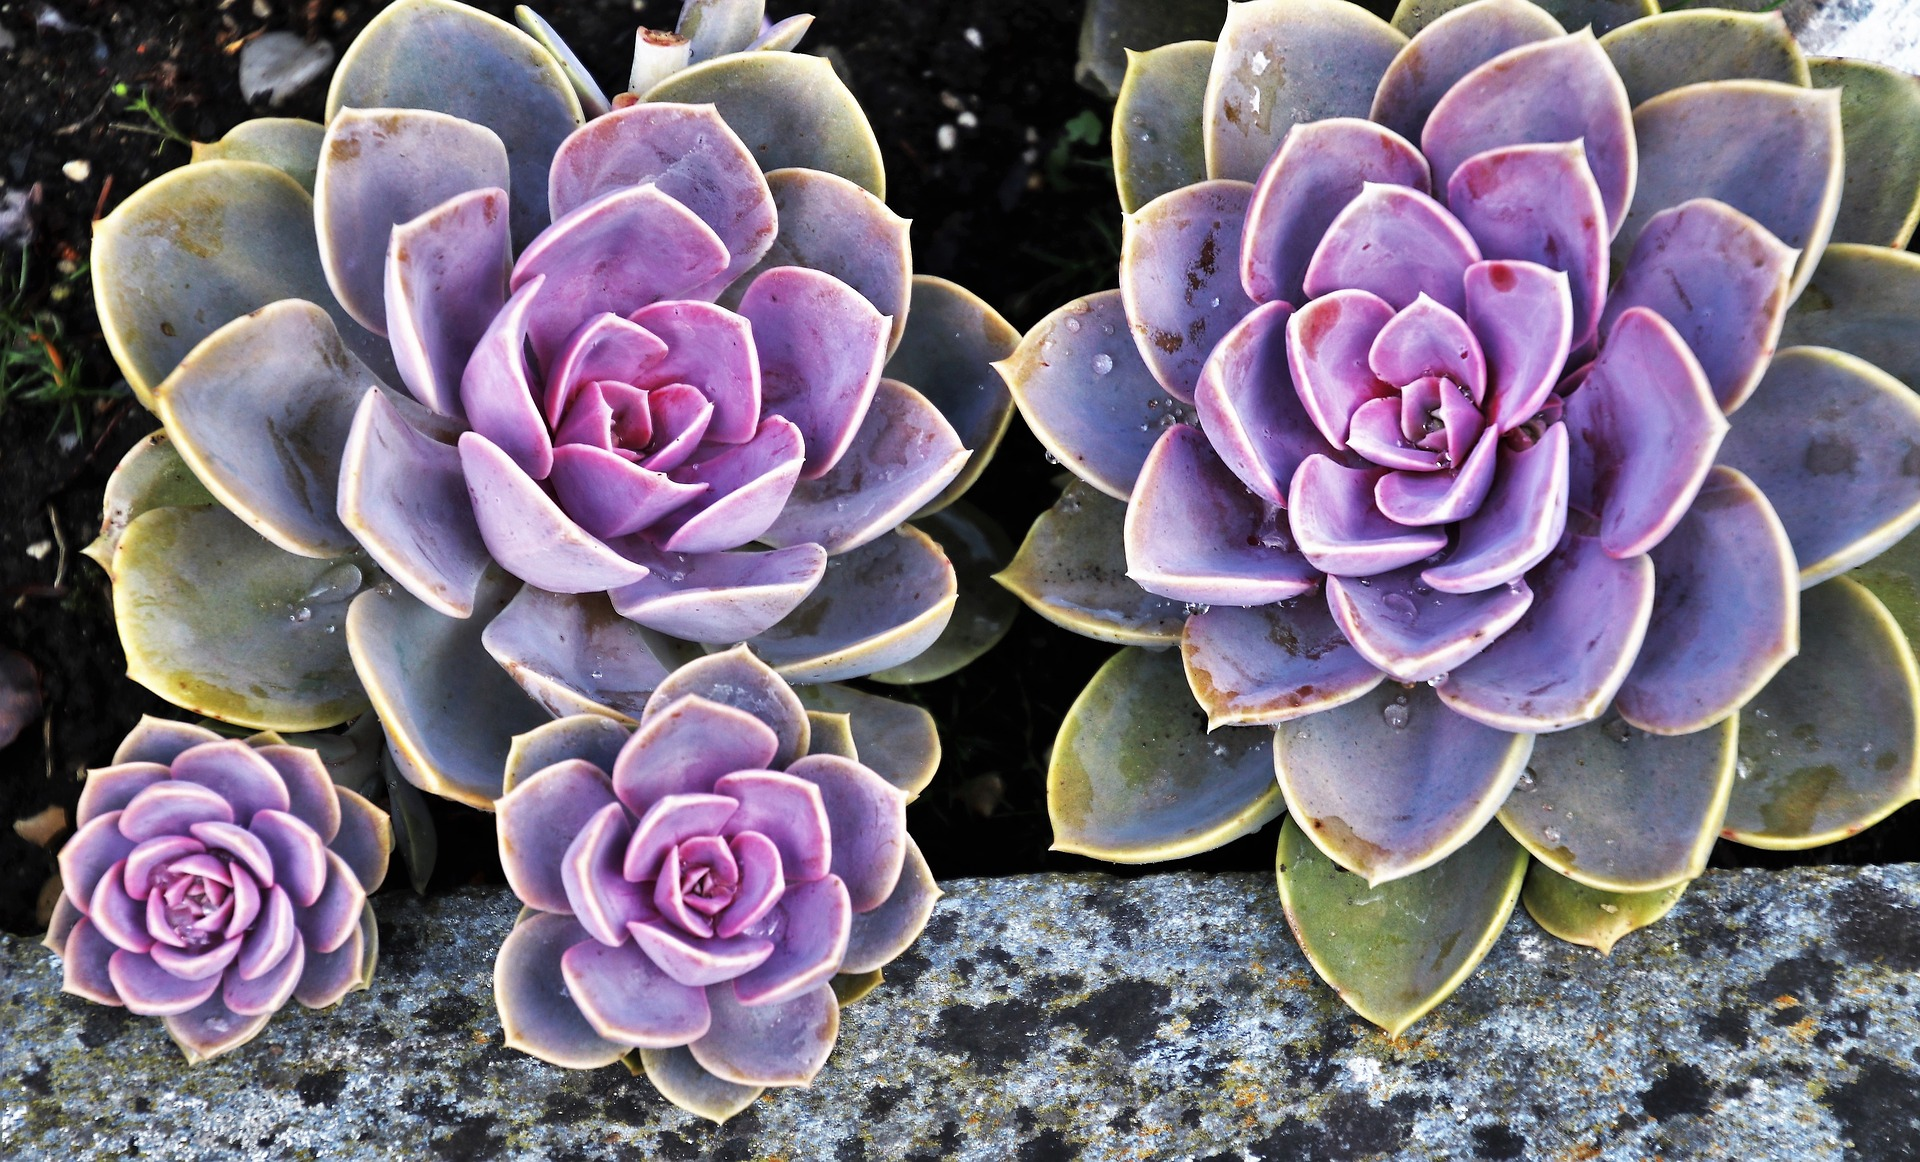 Succulents can be brought indoors. They need a very sunny window. Allow the soil to dry out between waterings, and do not fertilize until spring.